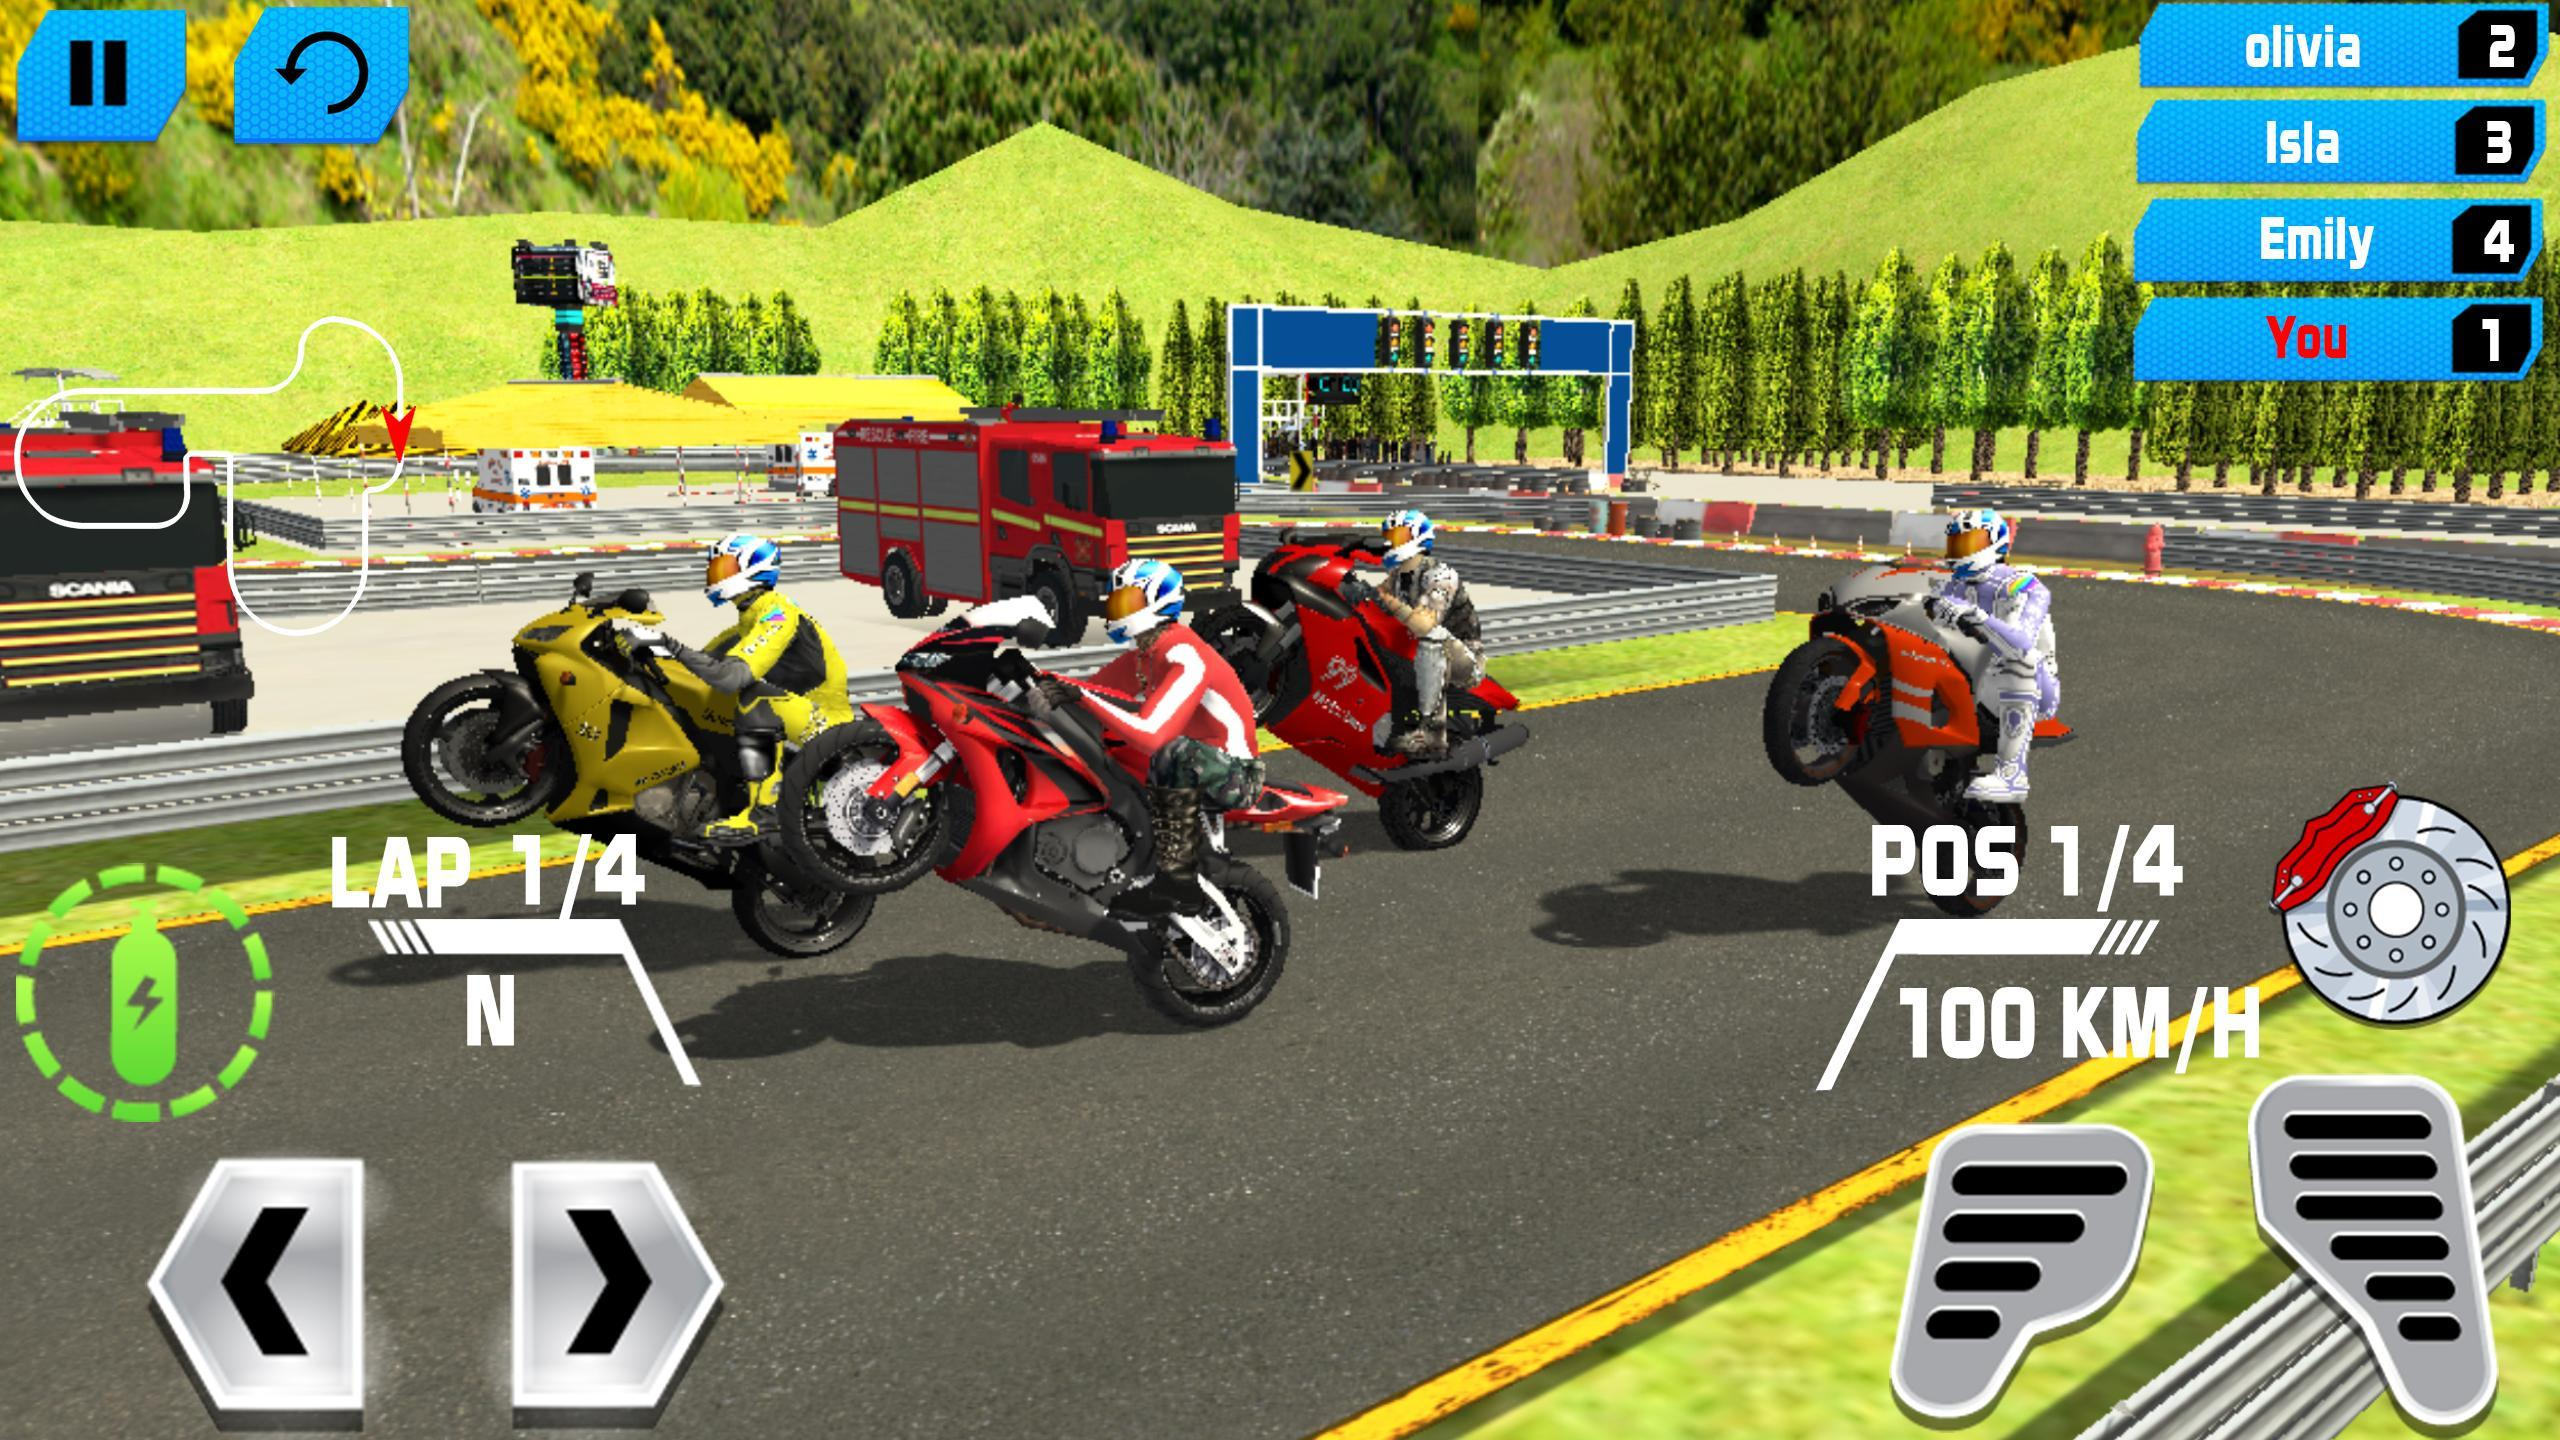 Extreme Bike Racing 2019 - Free Bike Rider Game for Android